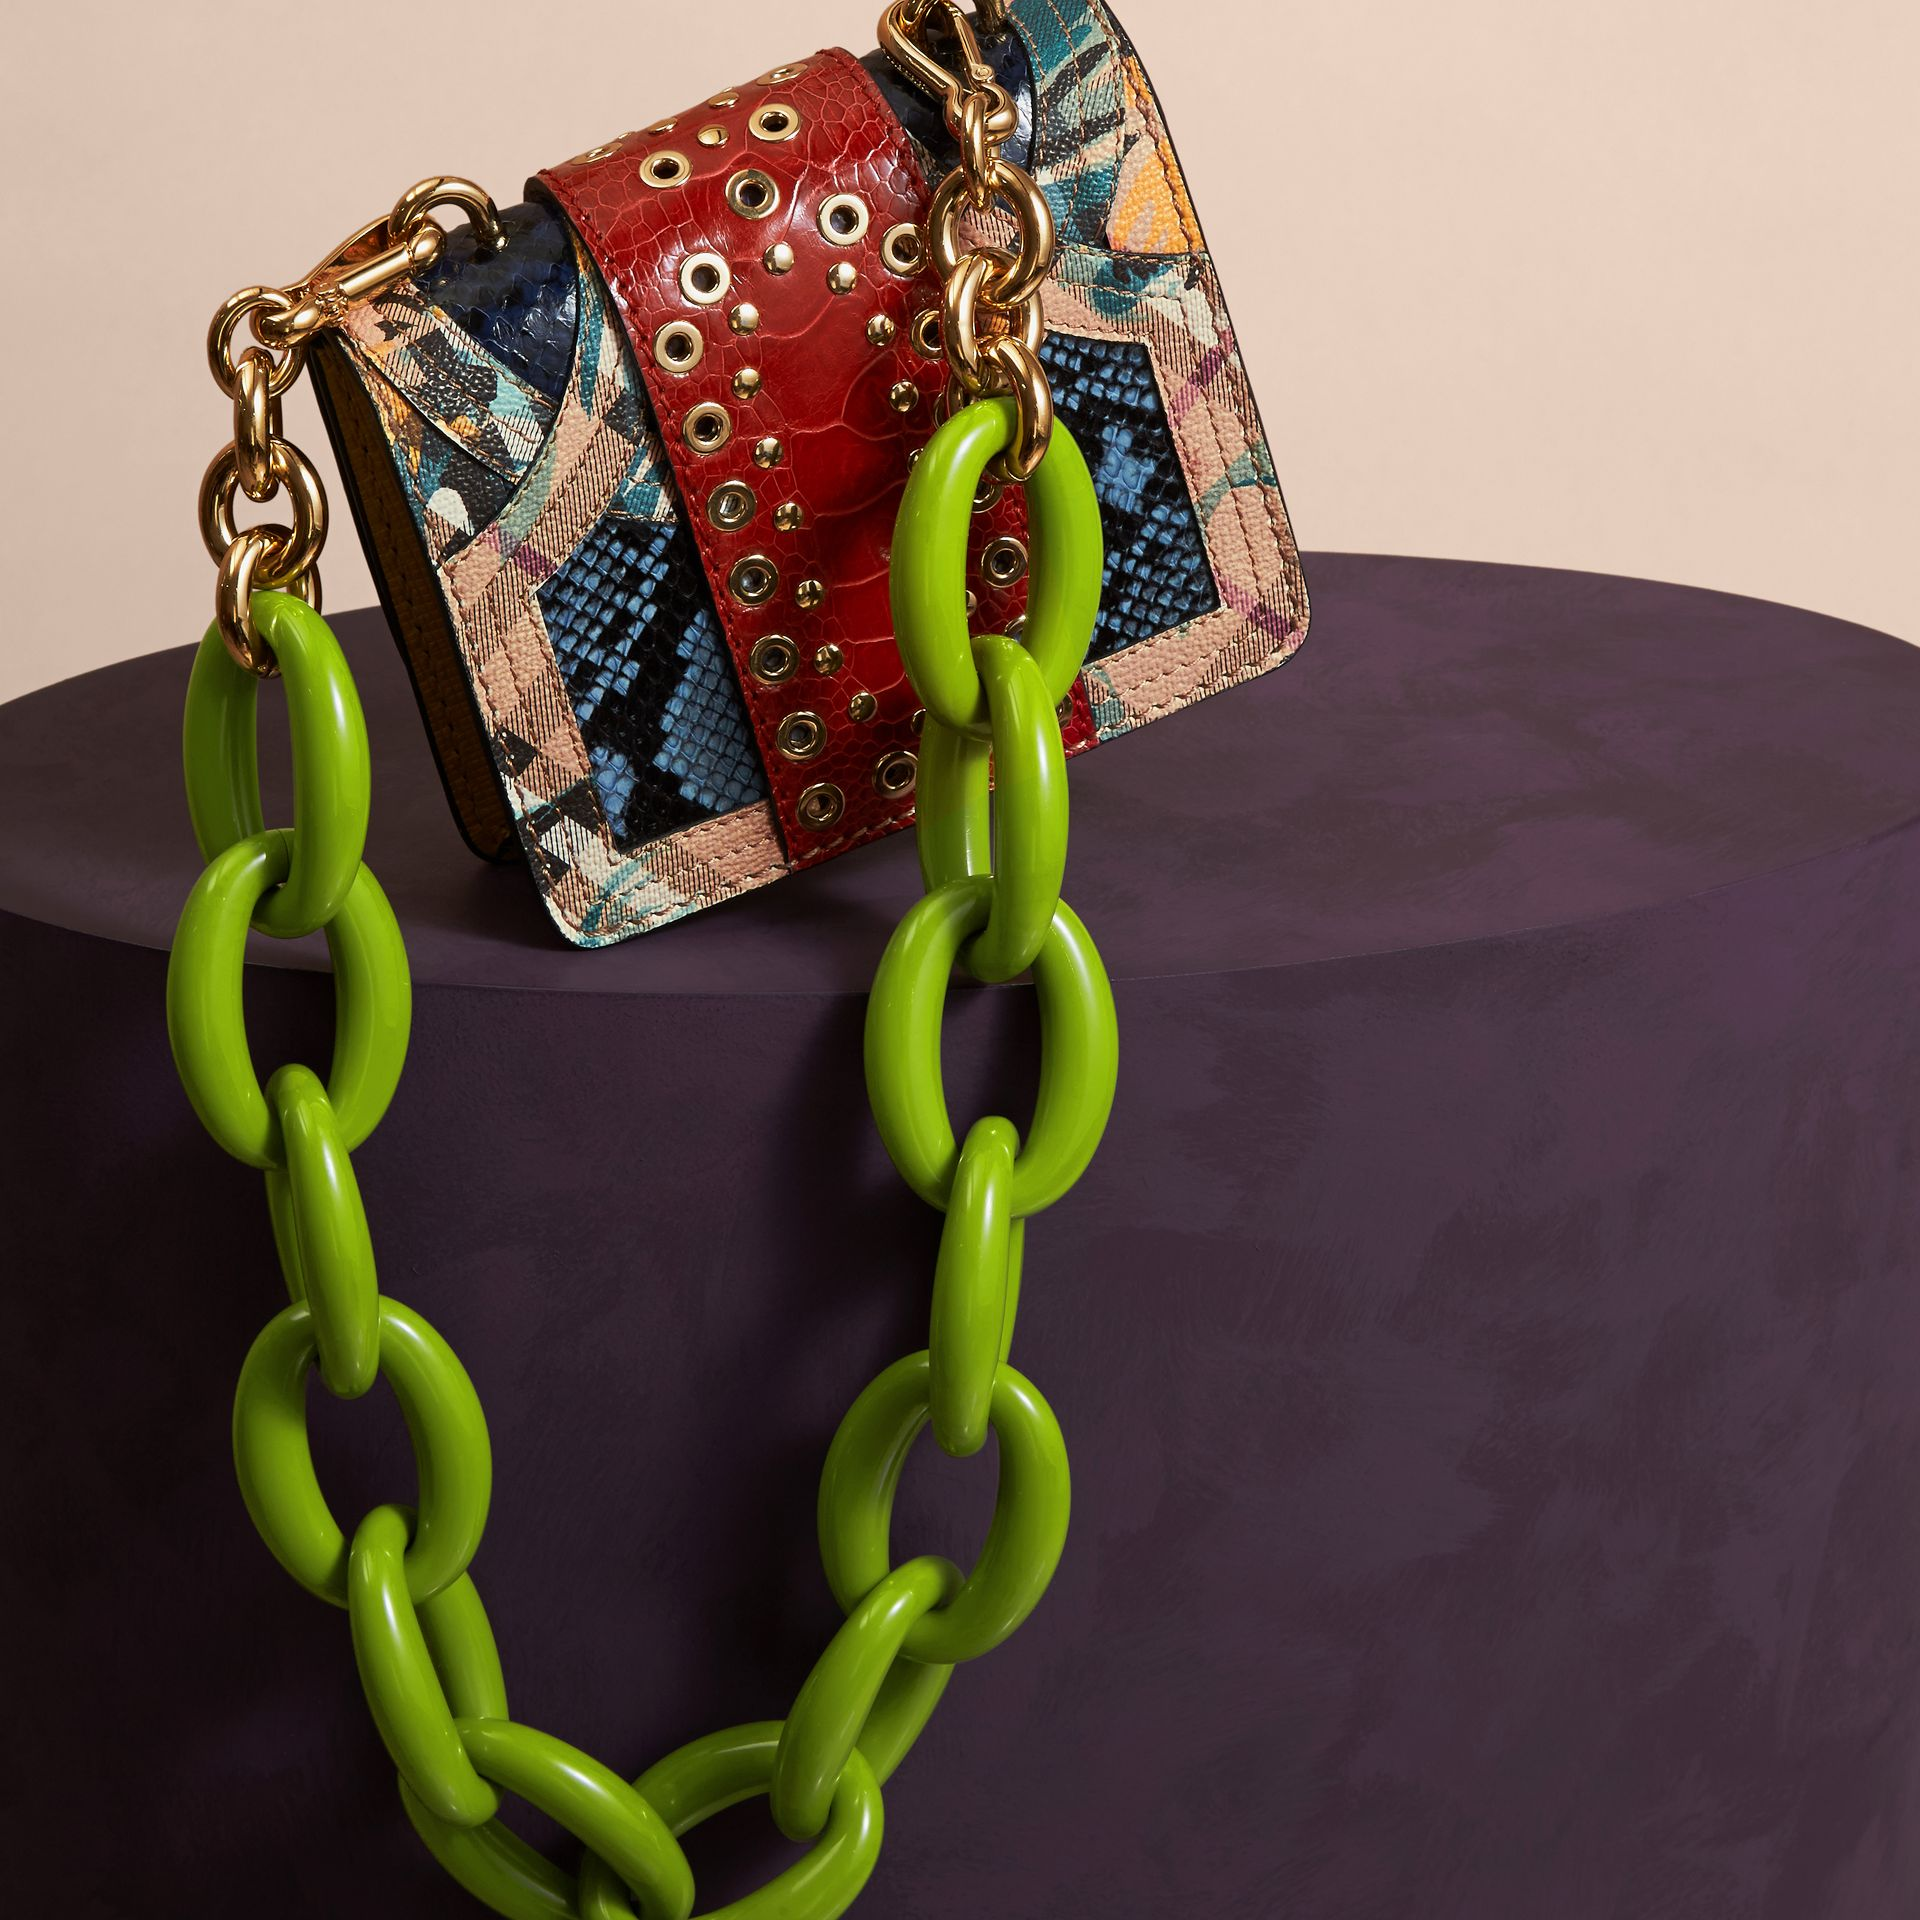 Pewter blue The Mini Square Buckle Bag in Snakeskin, Ostrich and Floral Print - gallery image 4